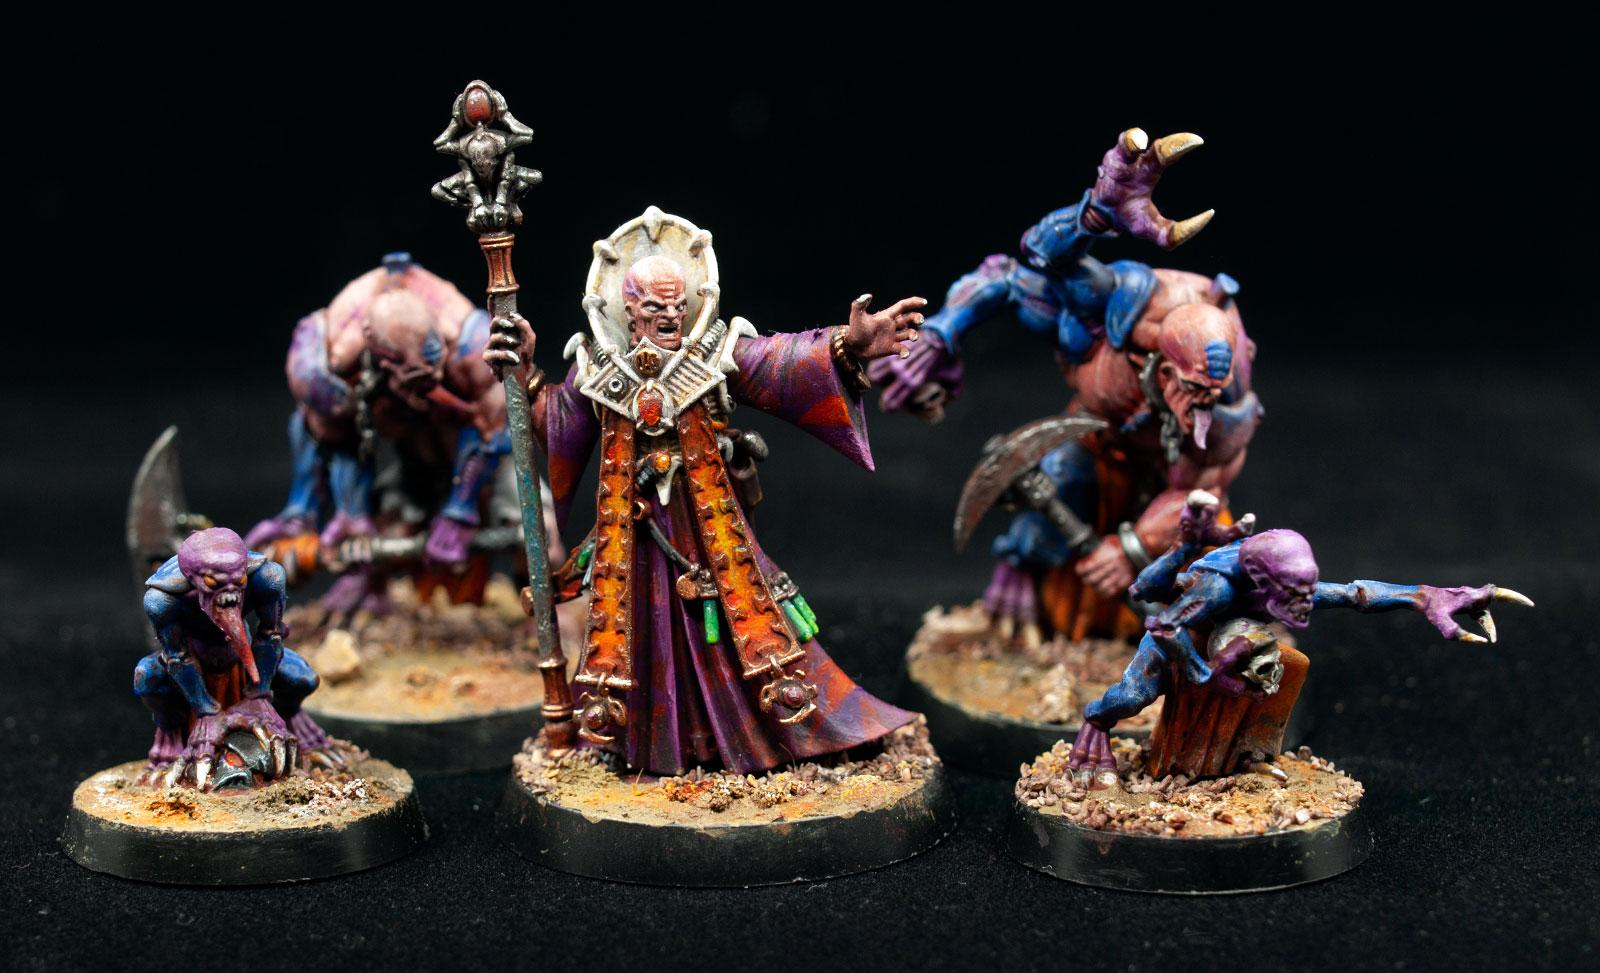 Aberrants, Familiars, Genestealer Cults, Magus, Overkill